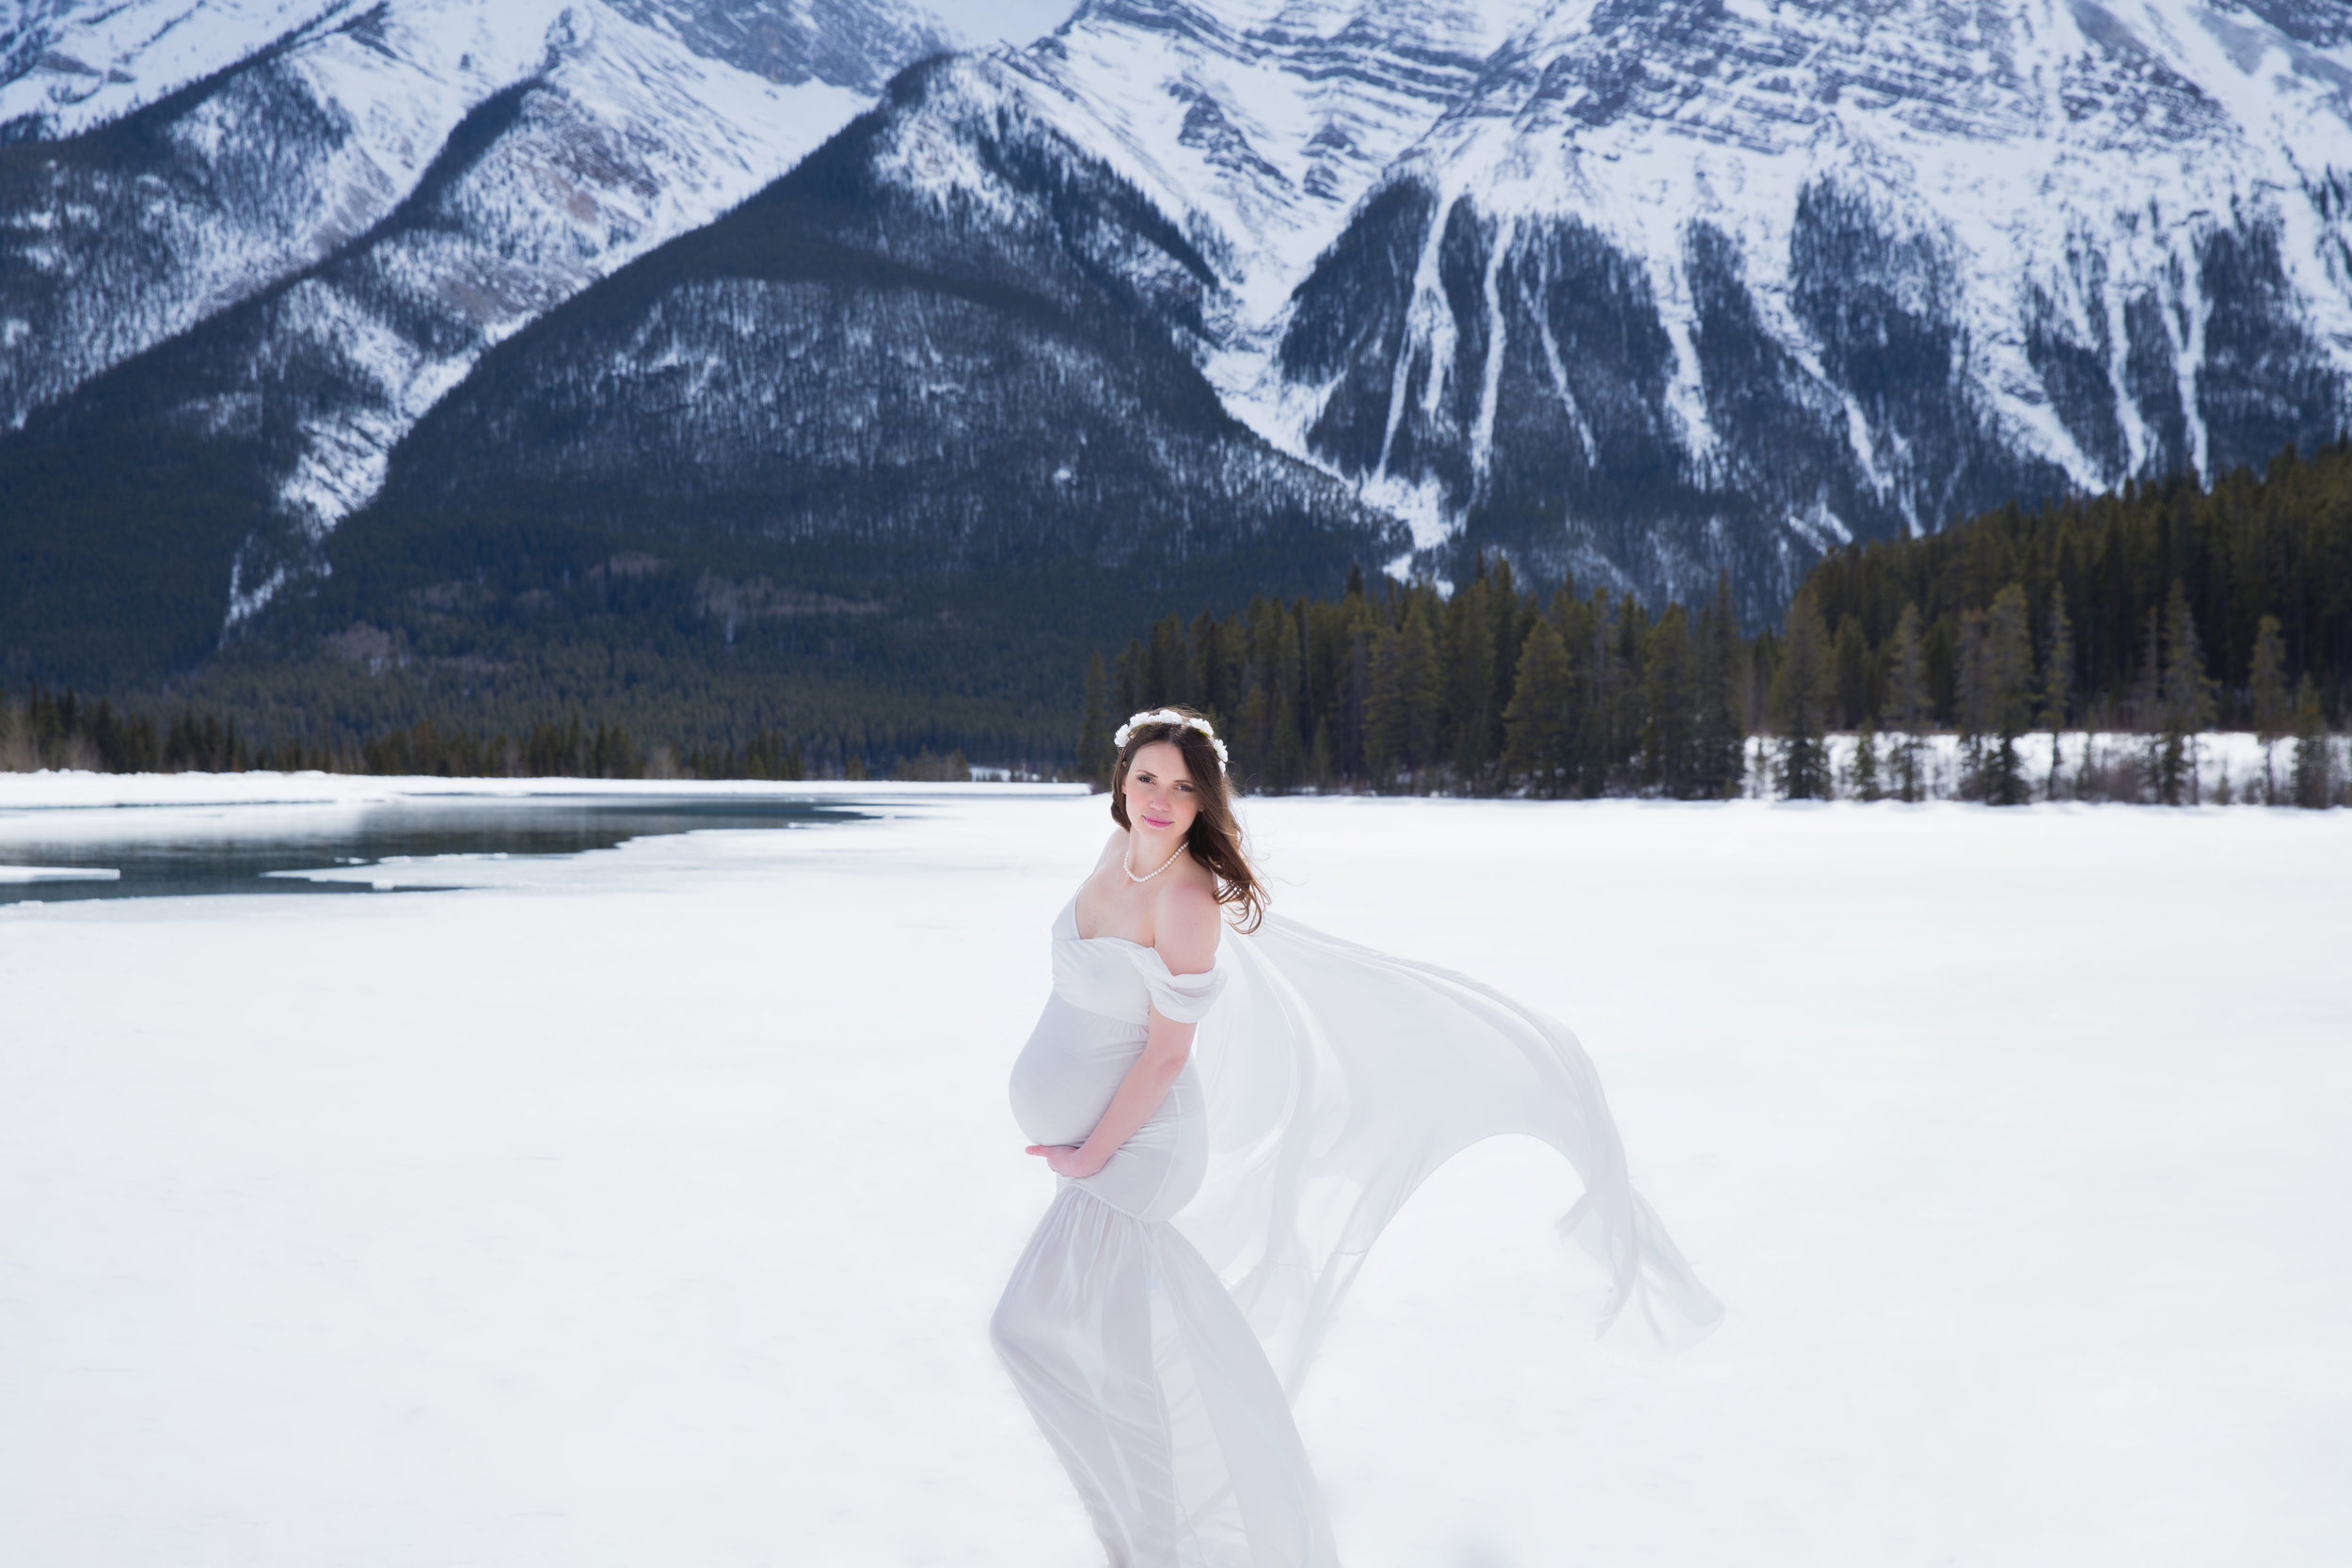 Mountain Maternity session during winter. Beautiful mother-to-be wearing a white gown on a snow in the mountains. Calgary and Airdrie photographer.